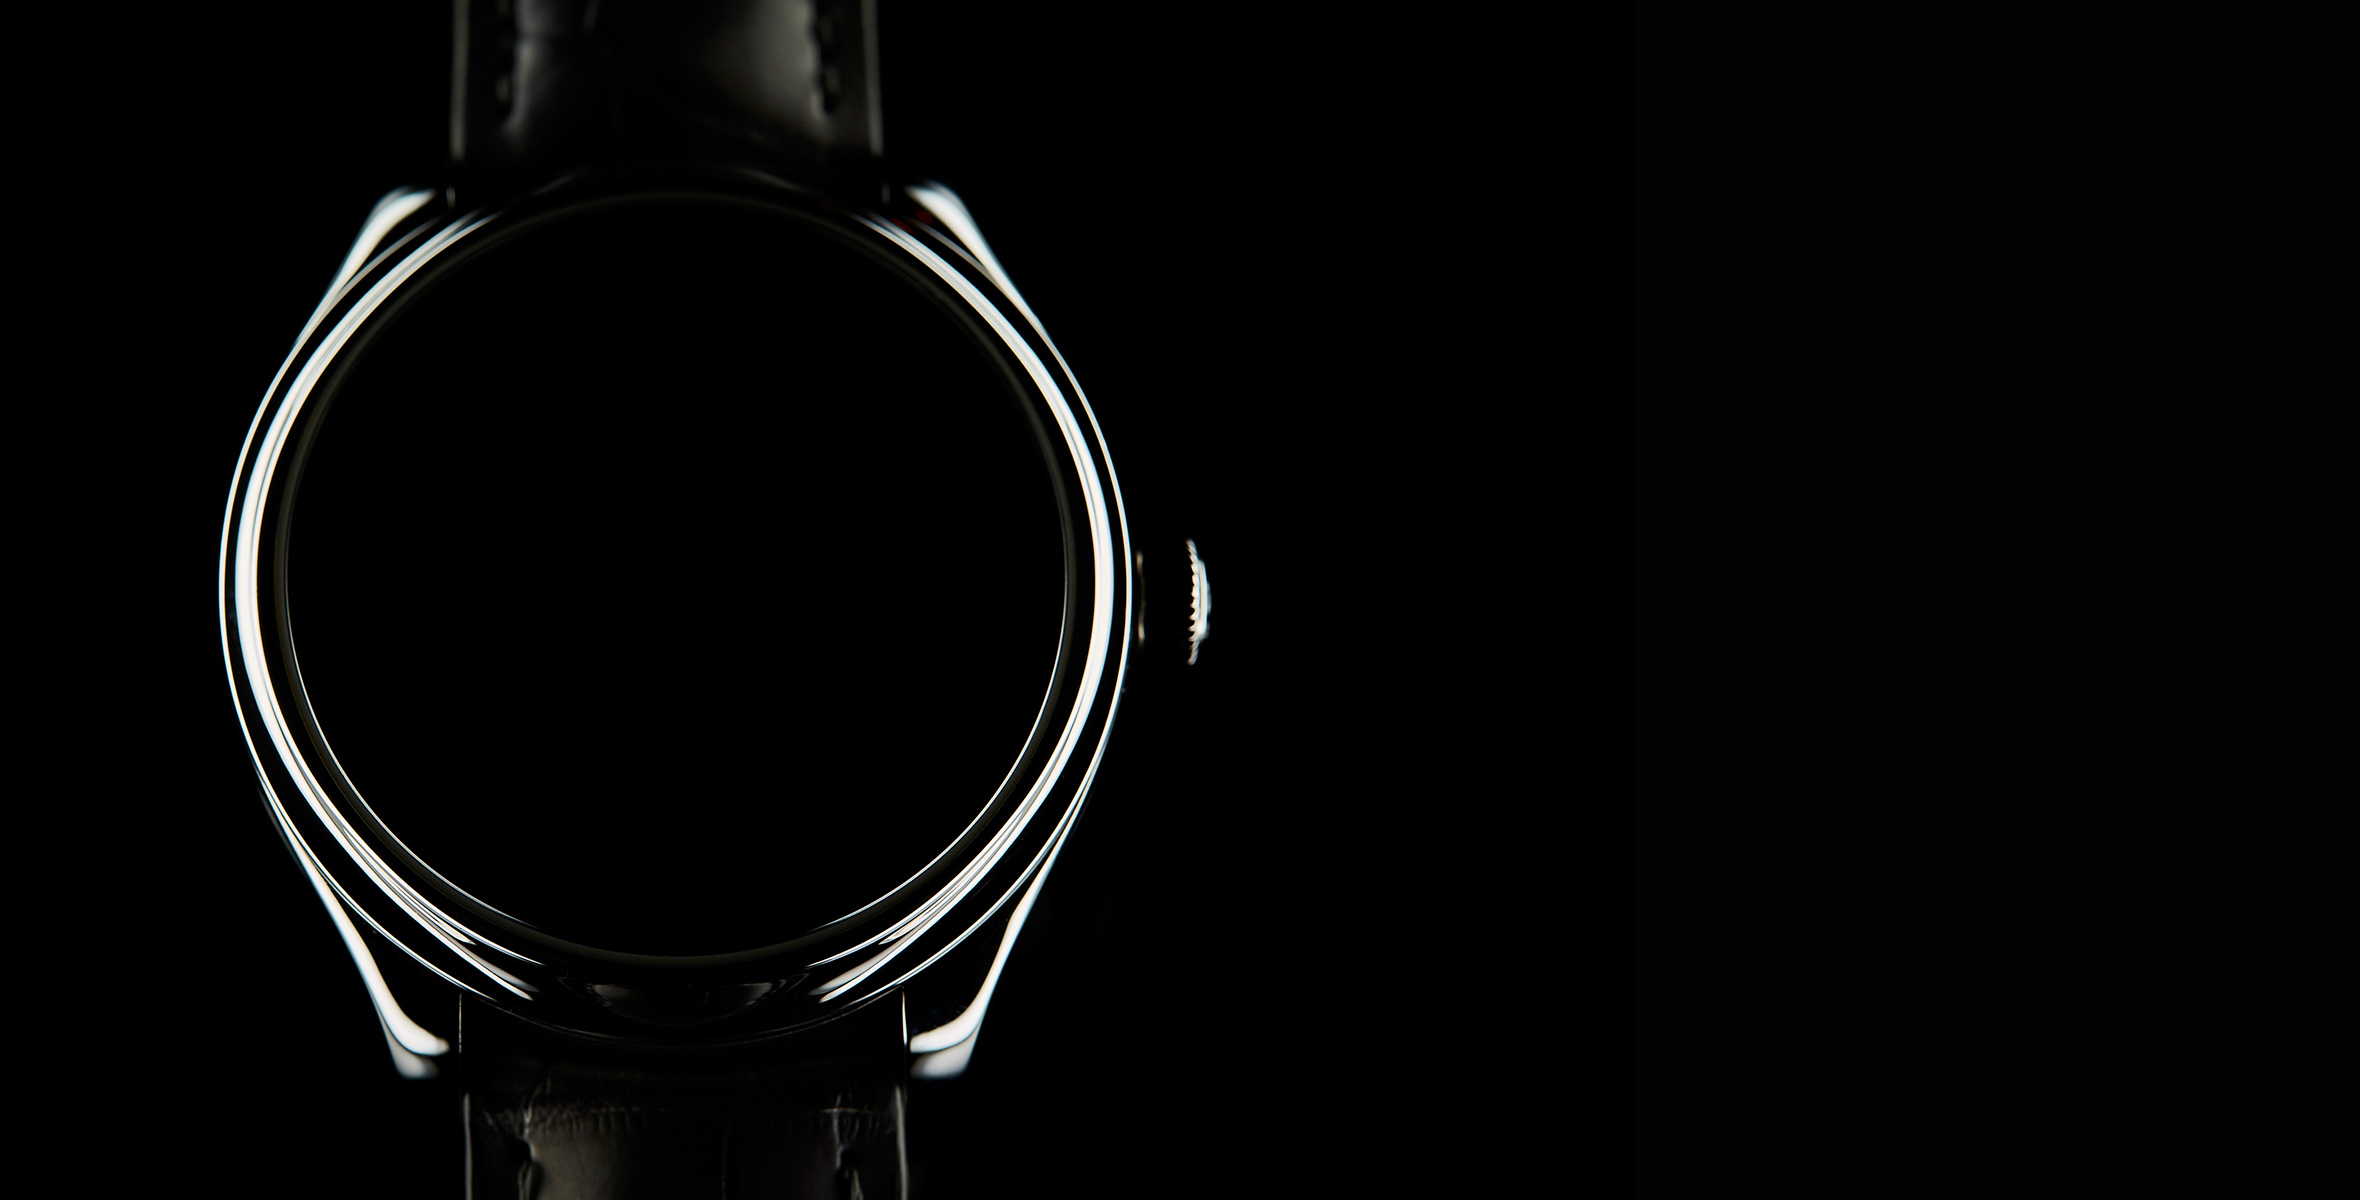 5 Times You Should Never Take a Photo Of Your Watch